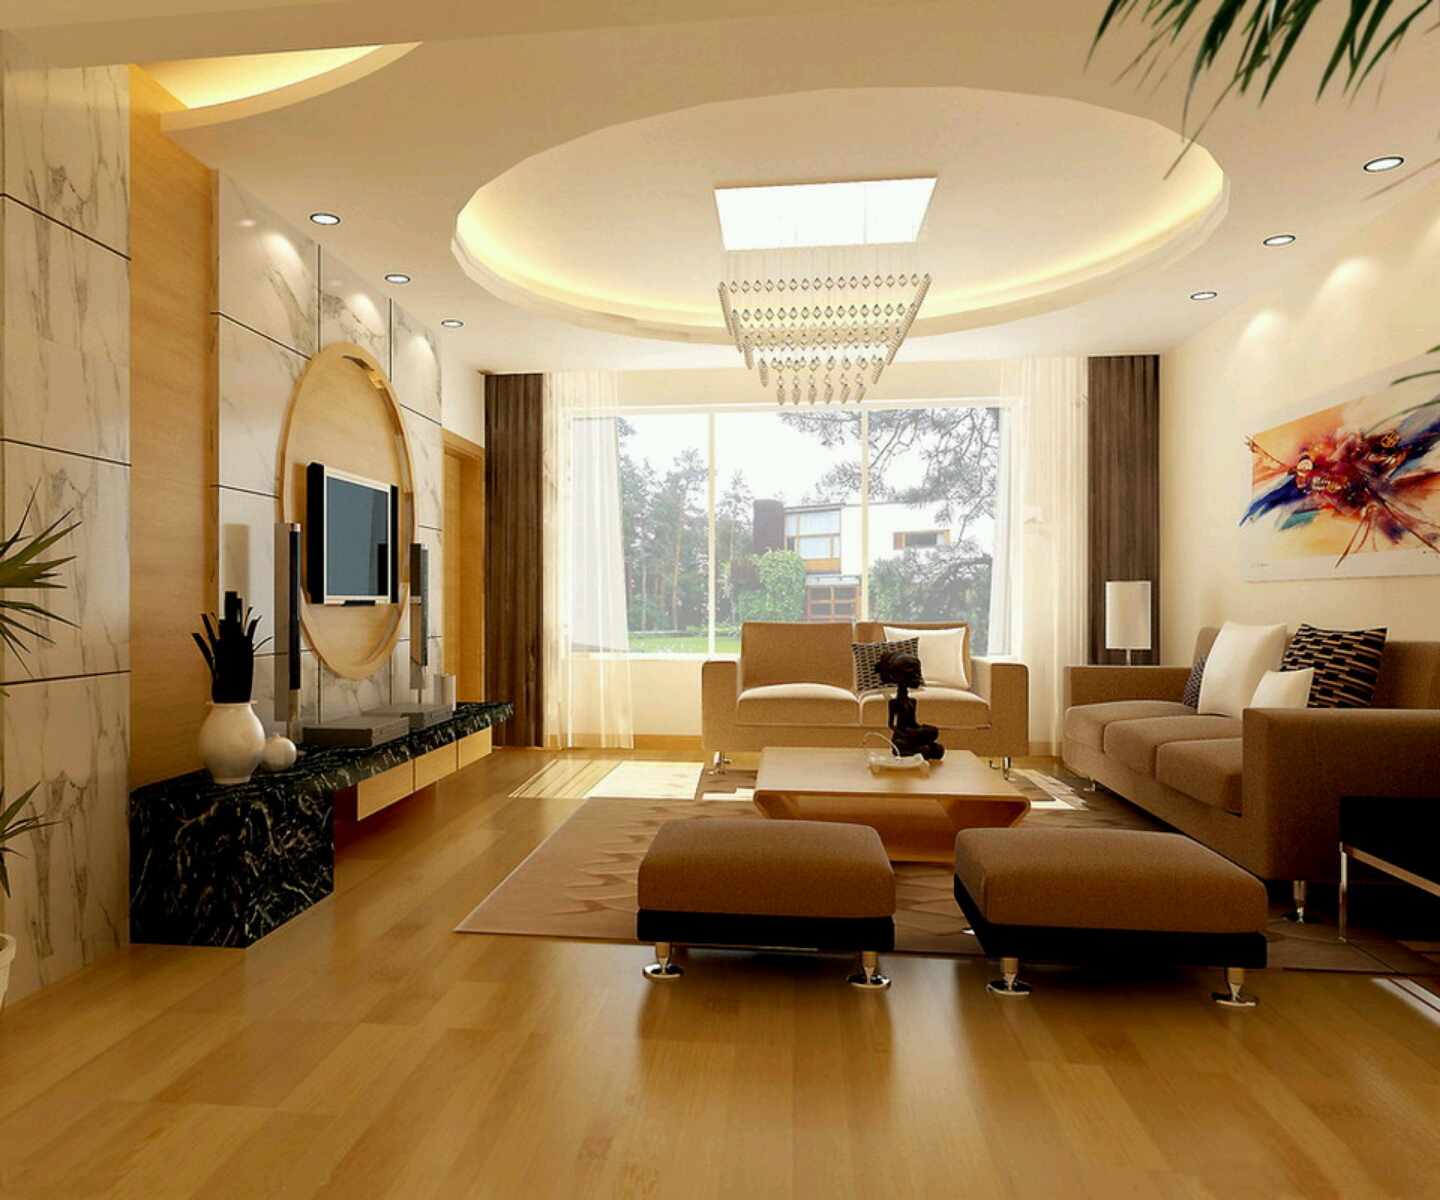 New home designs latest modern interior decoration for Interior design of living room